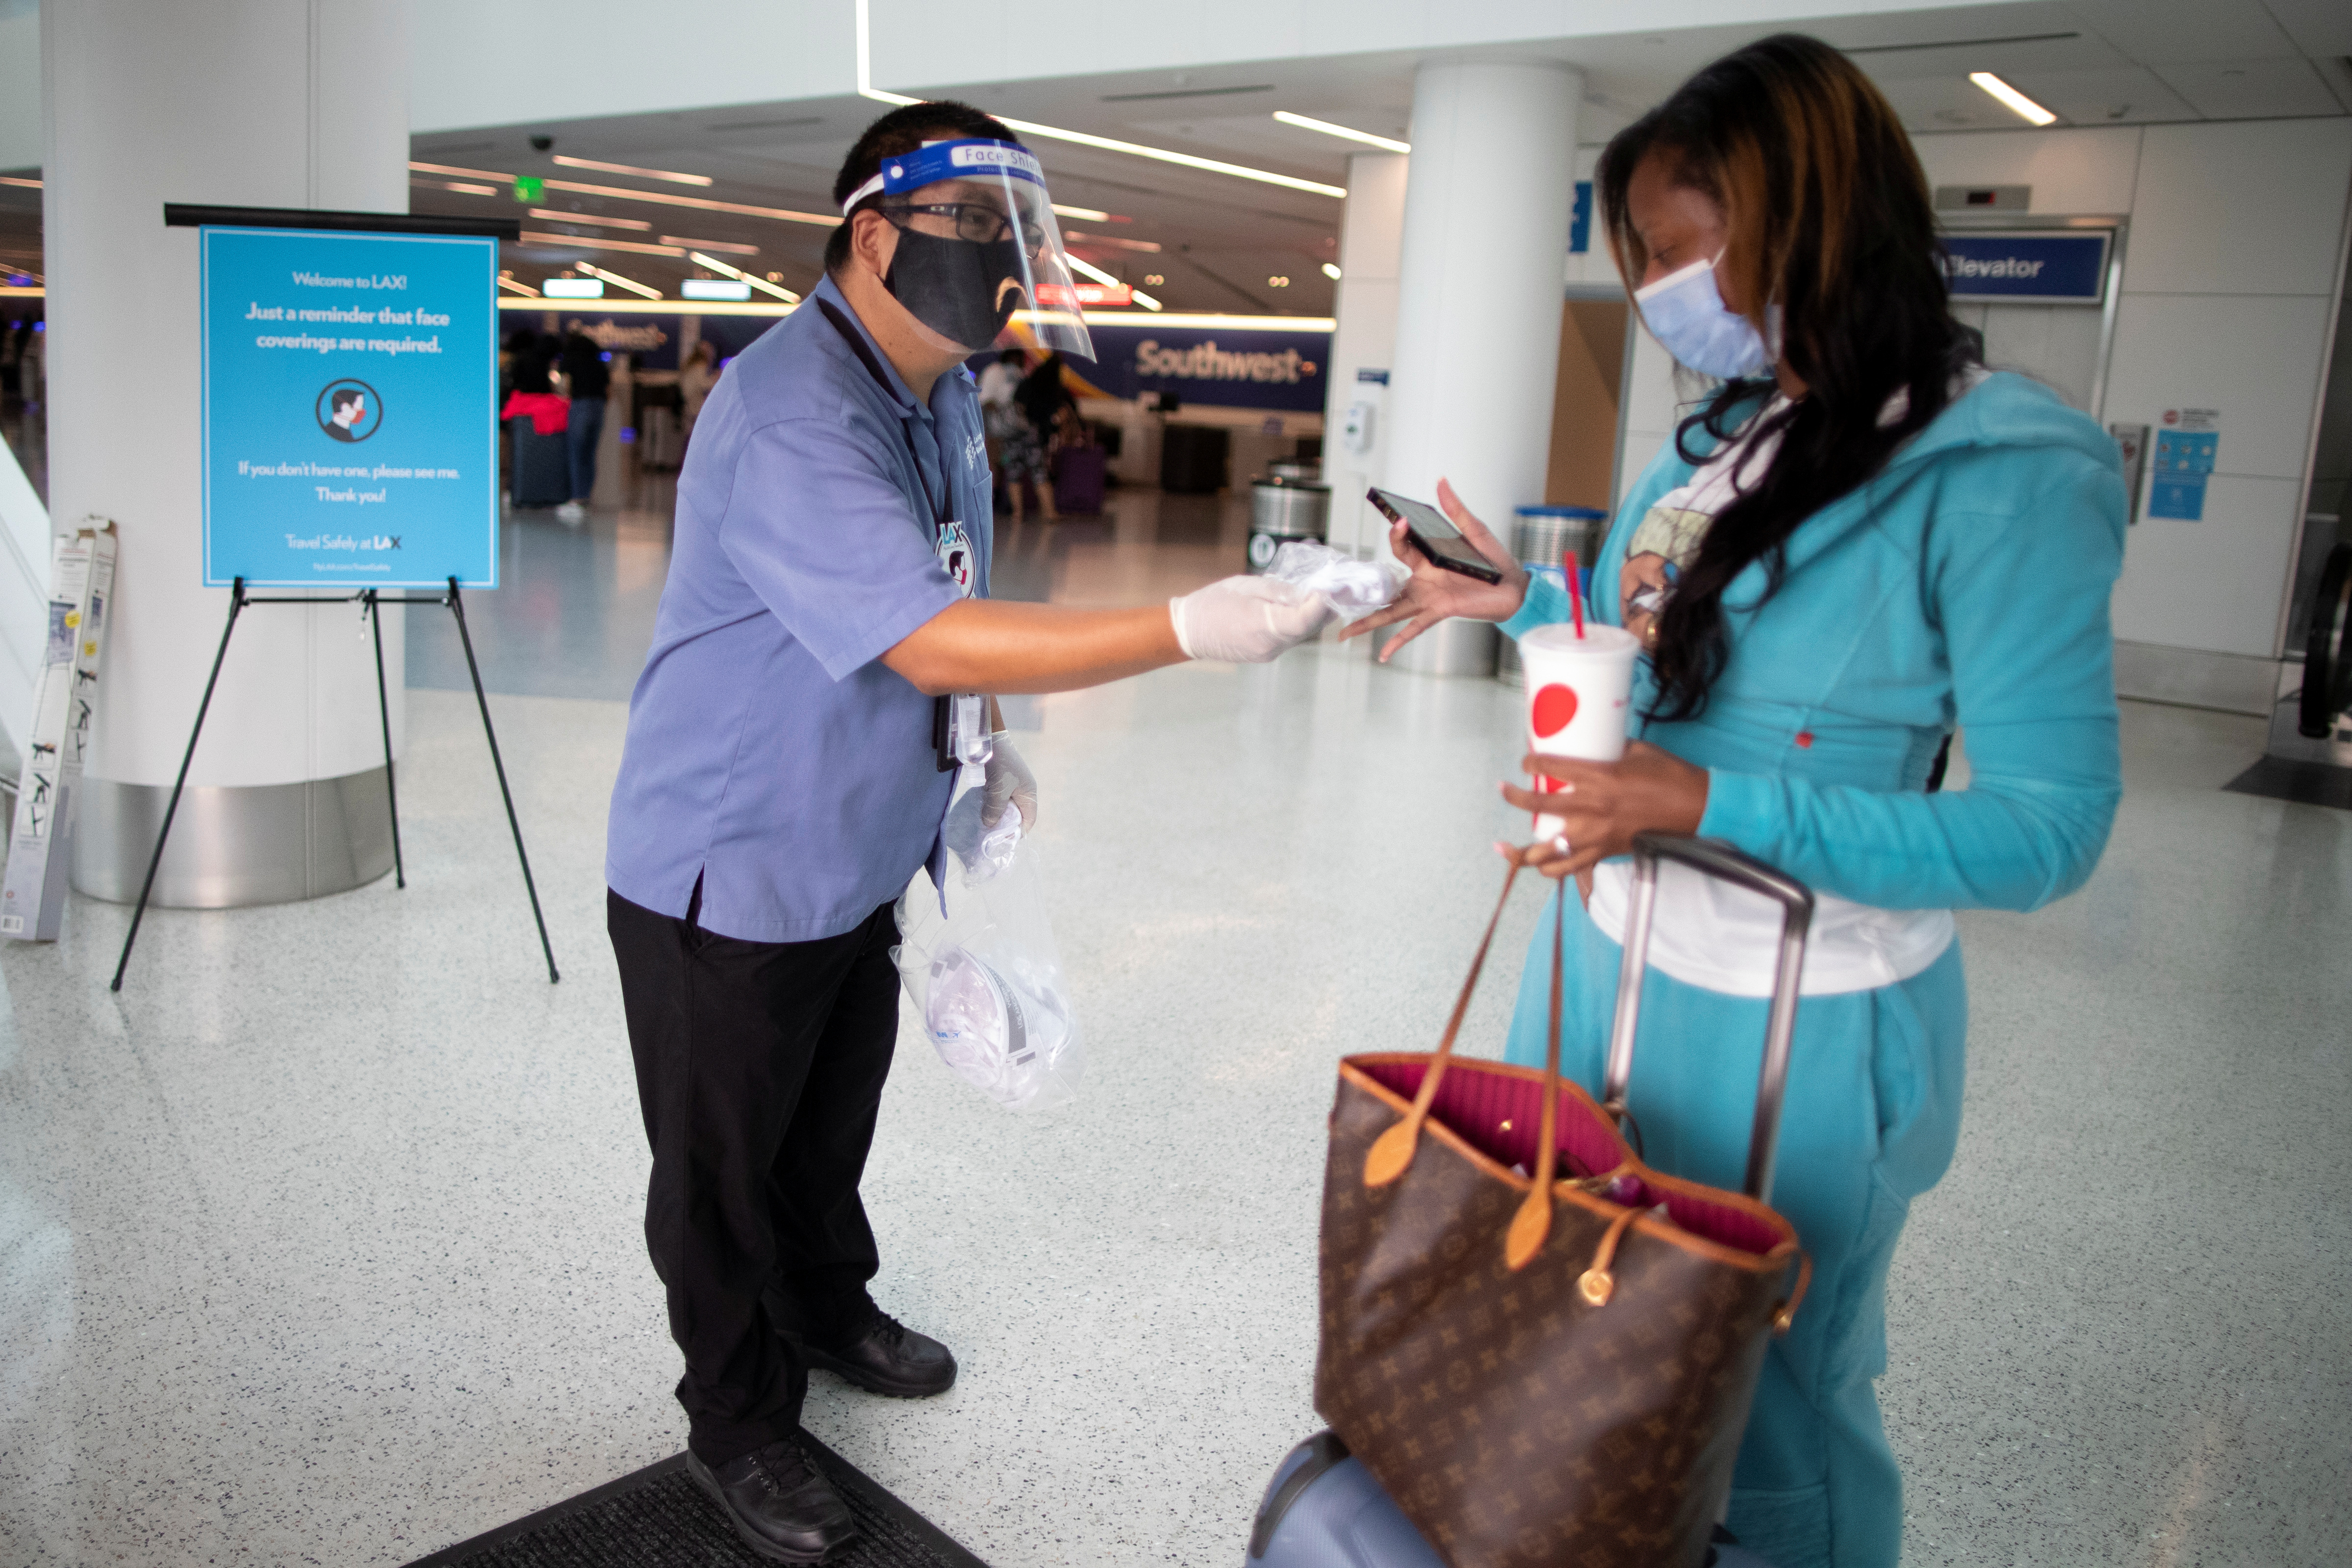 Travel Safely Ambassador Carlos Hernandez hands out a face masks to an airline passenger at LAX airport in Los Angeles, California, U.S., August 4, 2020. REUTERS/Lucy Nicholson